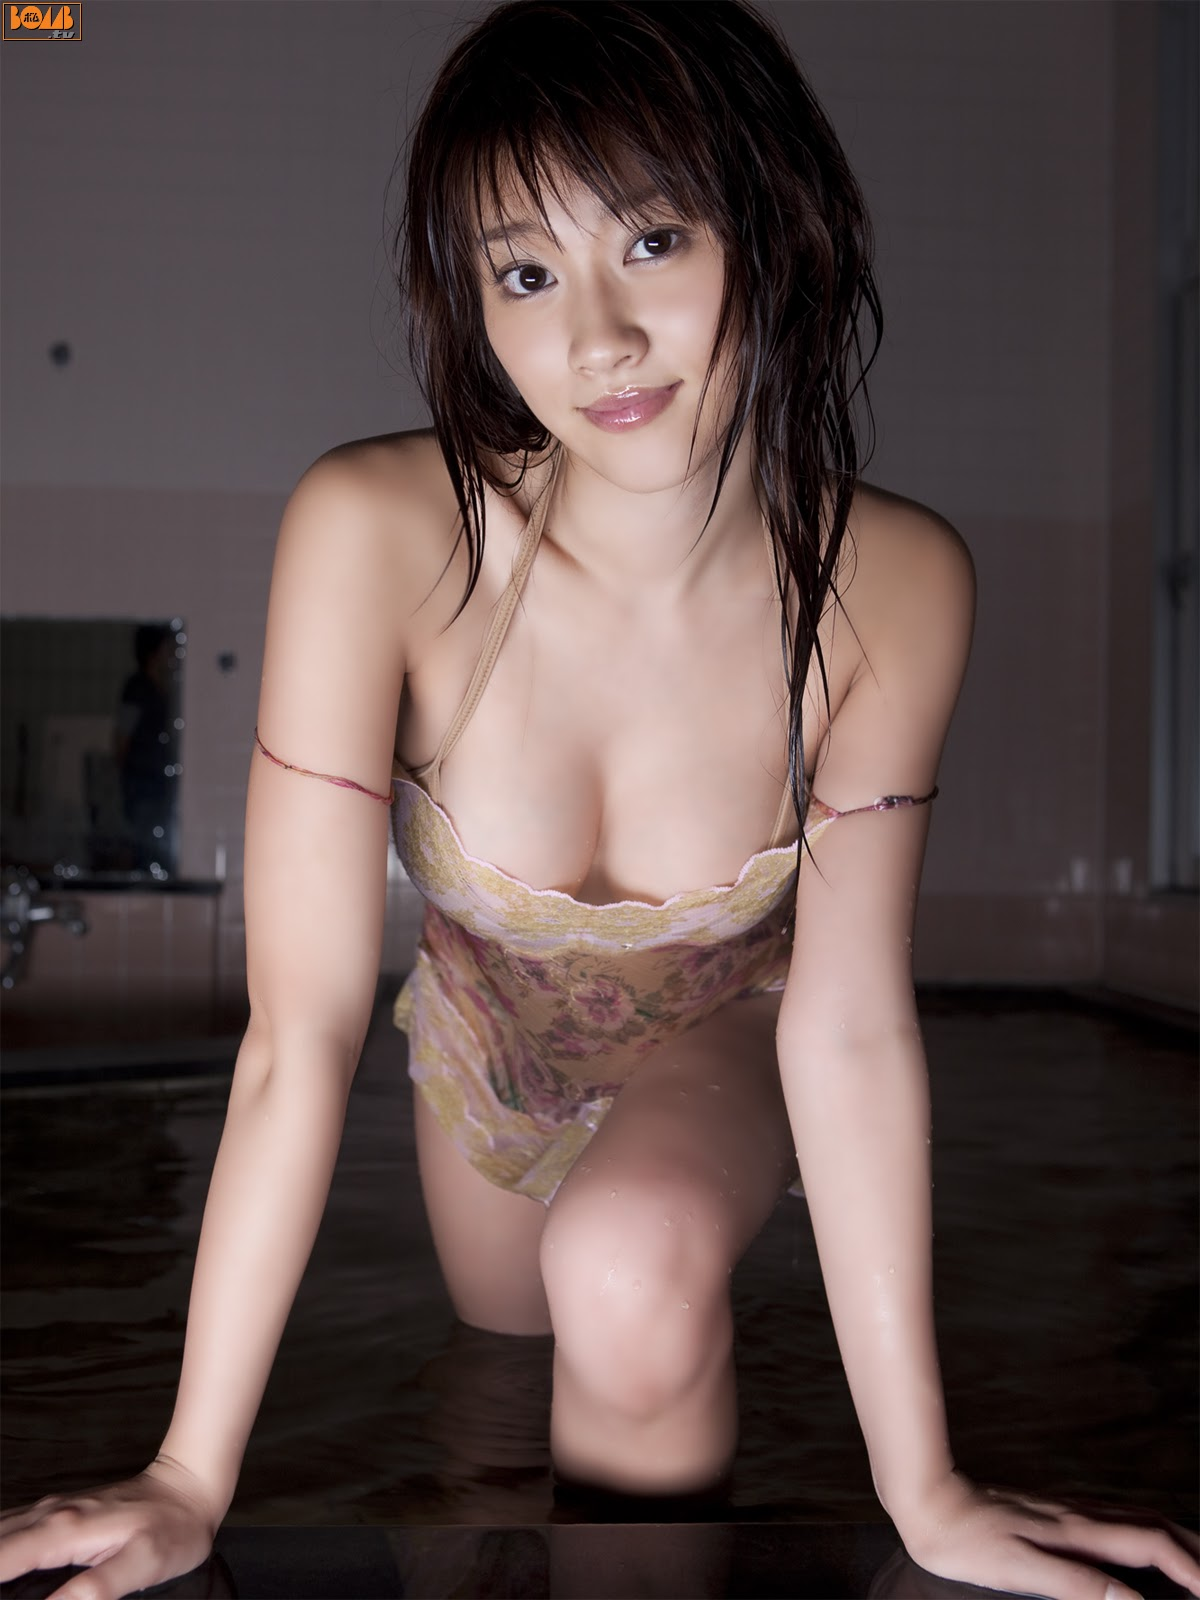 All kinds of redweathered skin sweaty skin smiles in the morning light Mikie Hara024